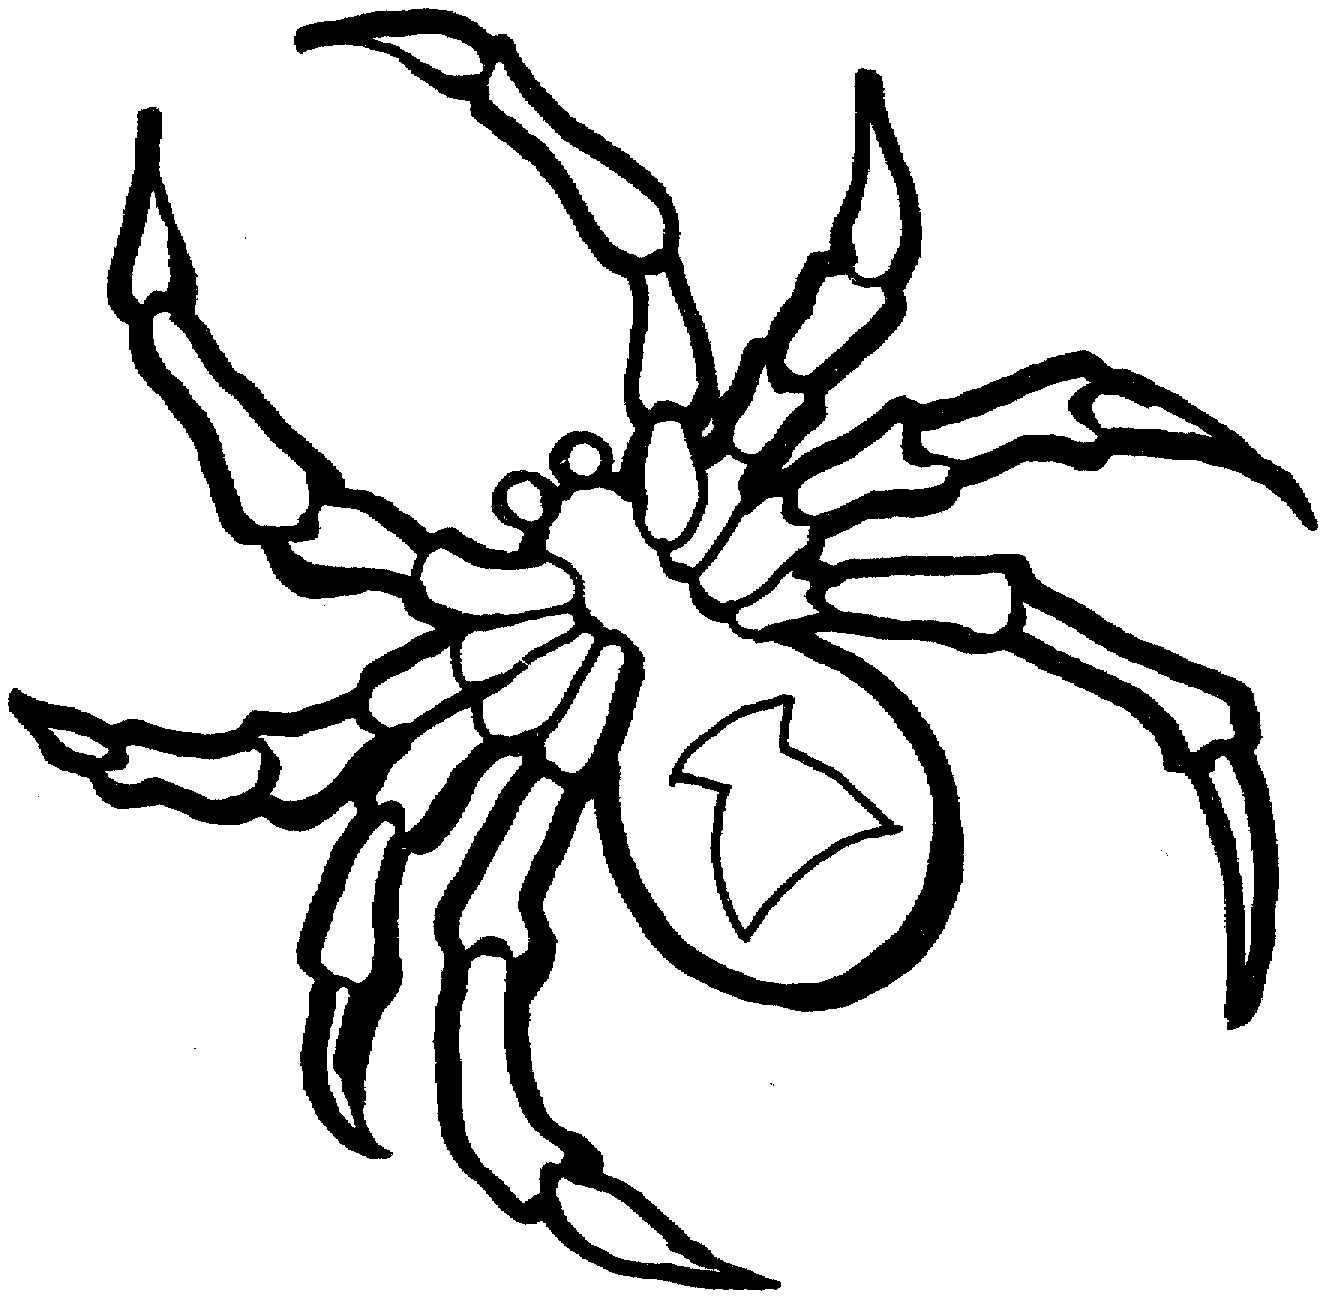 coloring printable spiders spider coloring pages kidsuki printable spiders coloring